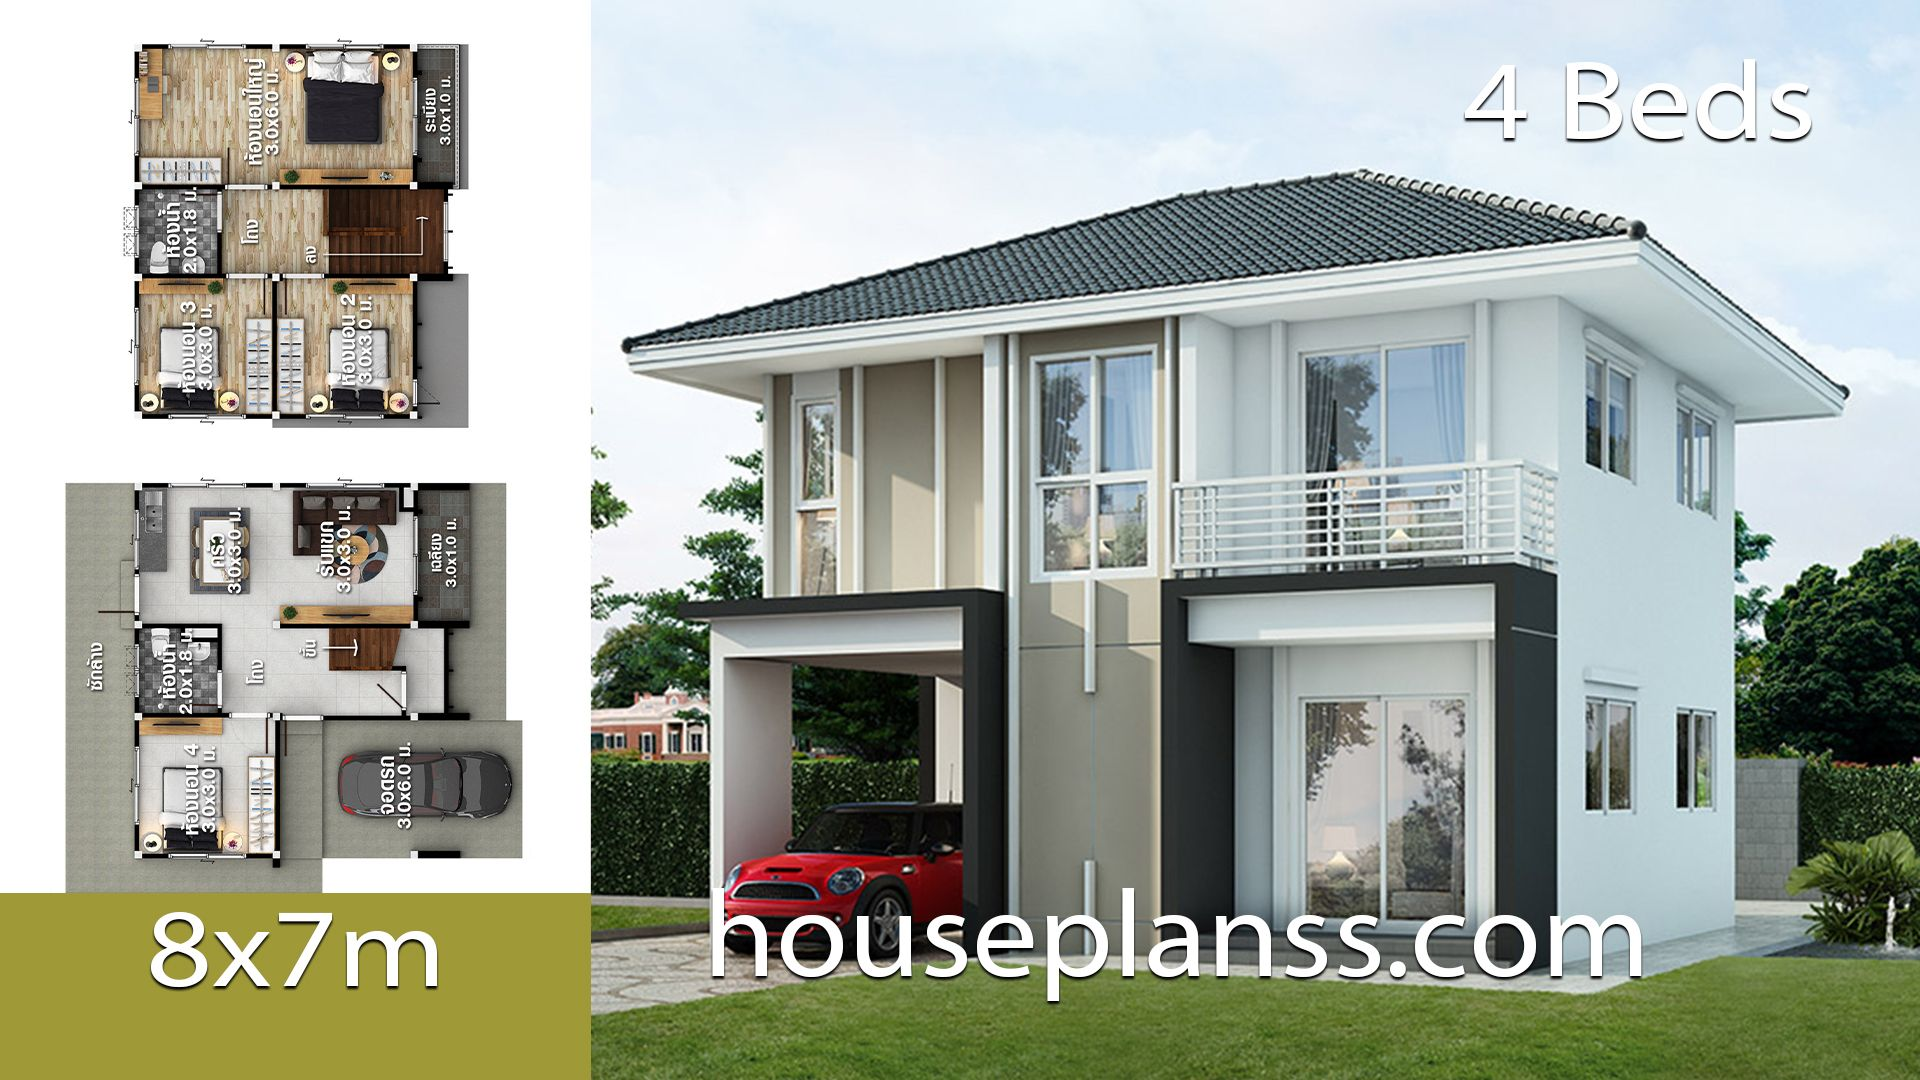 House Plans Design Idea 8x7 With 4 Bedroomsthe House Has Building Size M X M 8 00 X 7 00land S In 2020 Two Story House Design House Design Small Modern House Plans